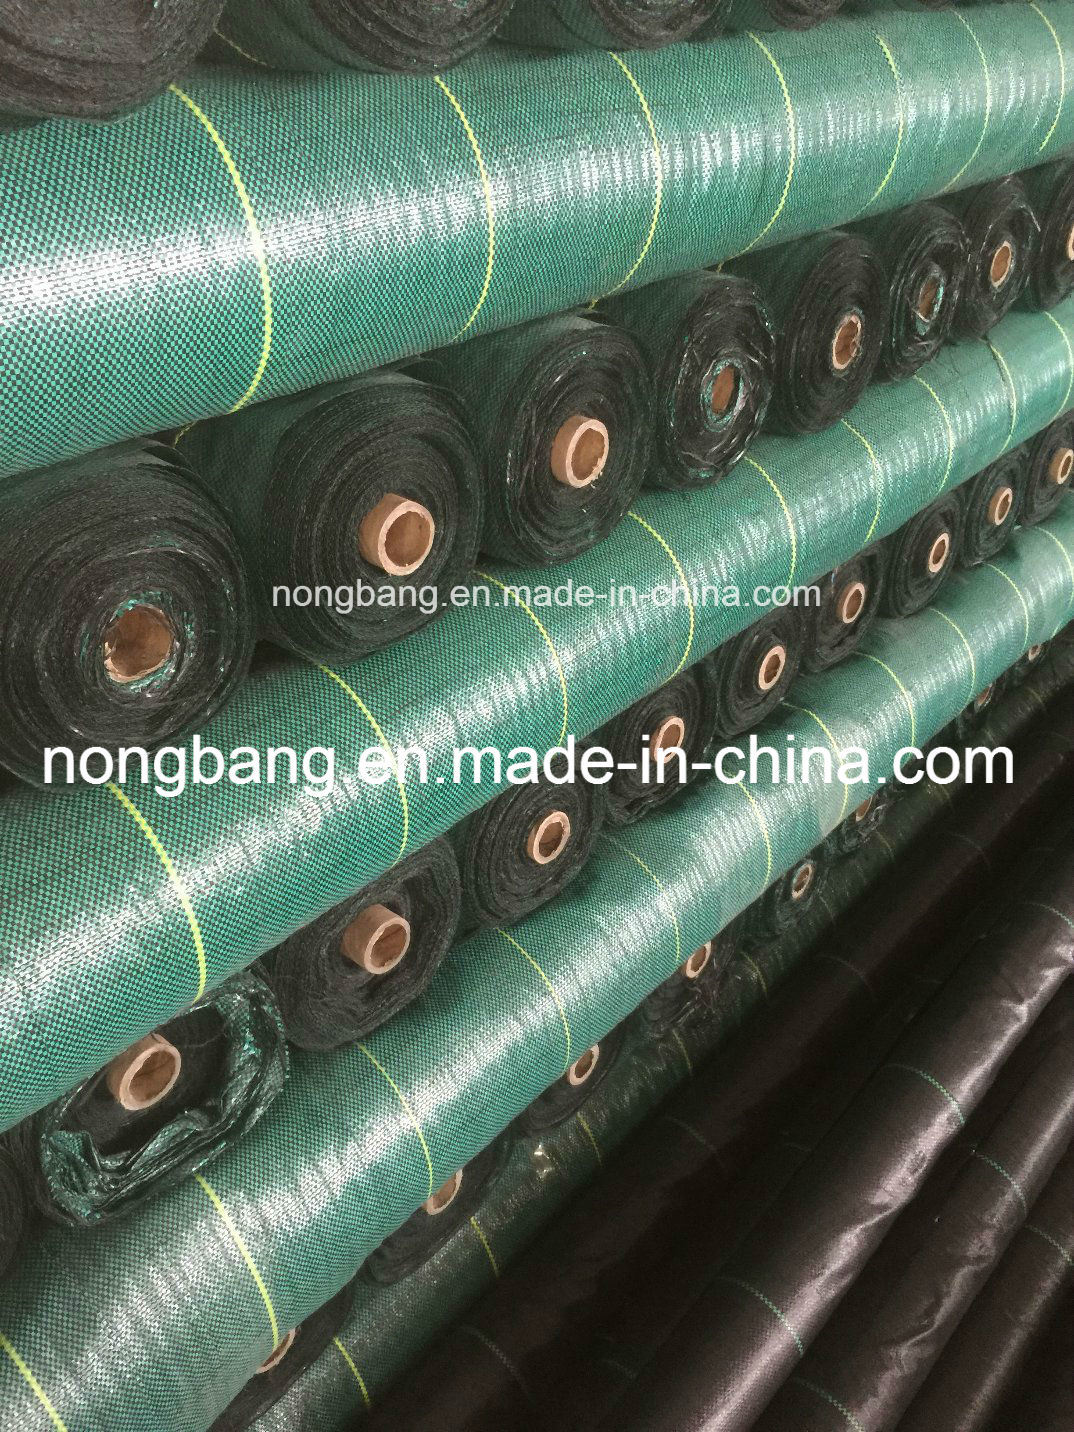 Woven Gardening Weed Control Fabric with UV